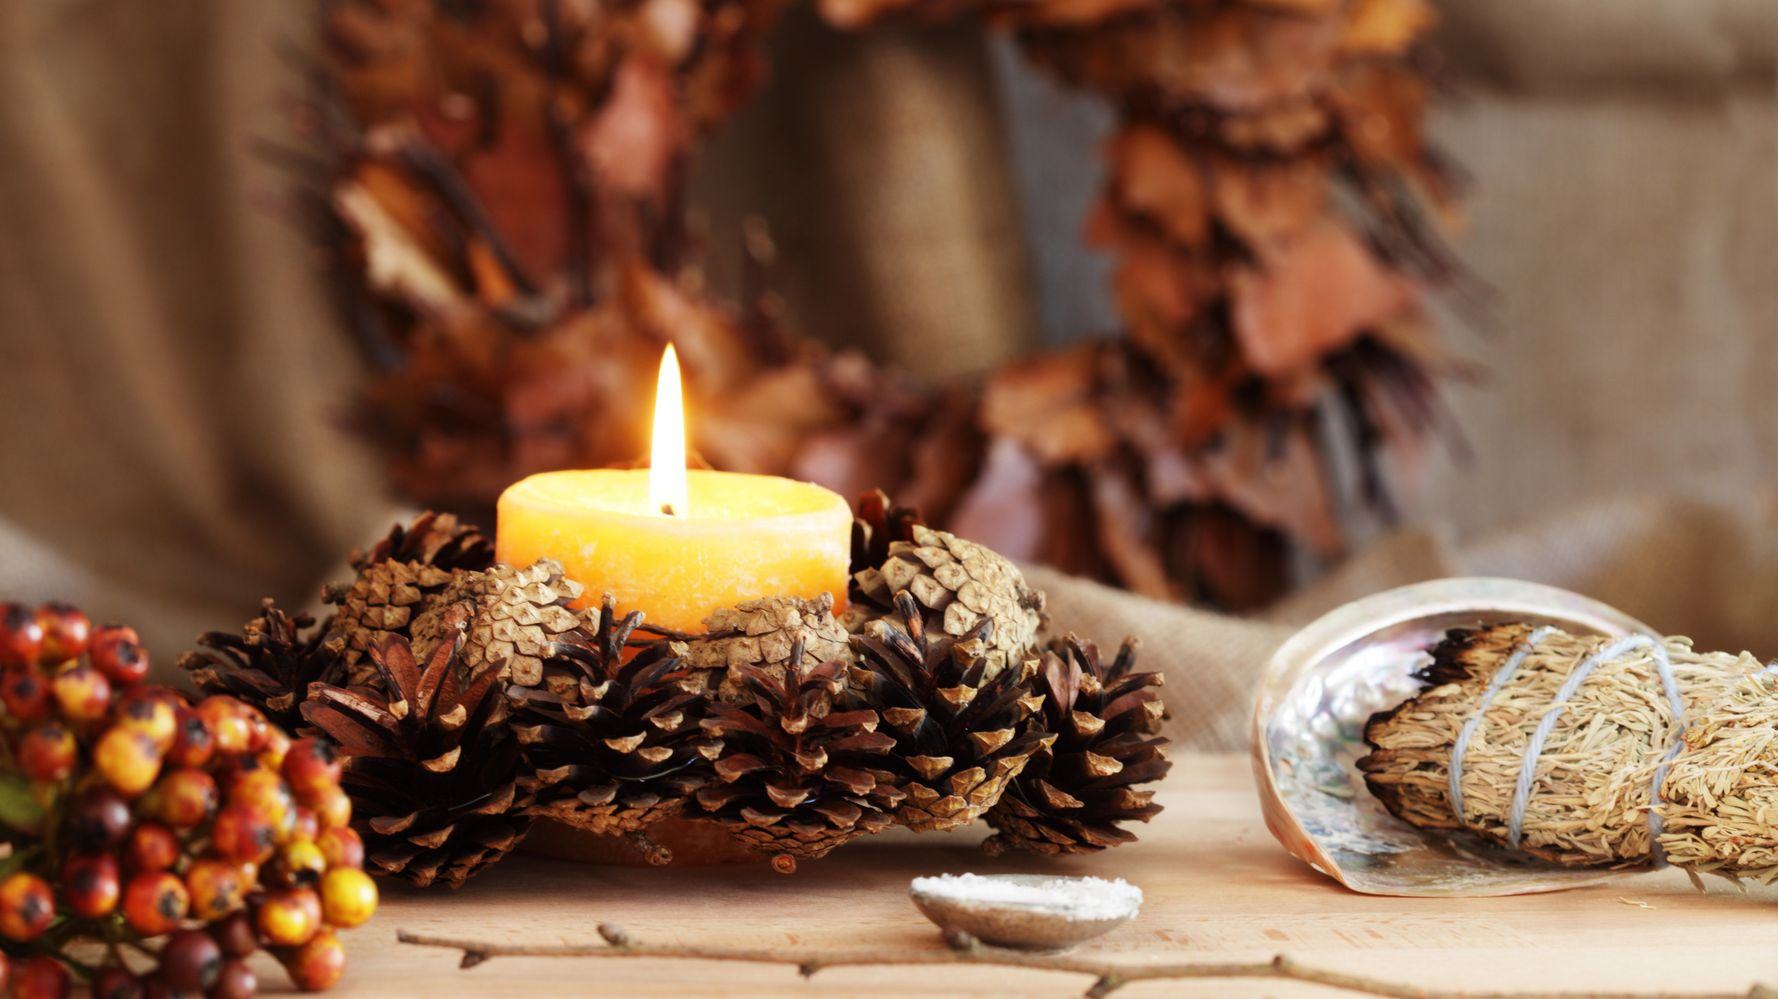 Samhain 2016: Traditions And Rituals For The Pagan New Year